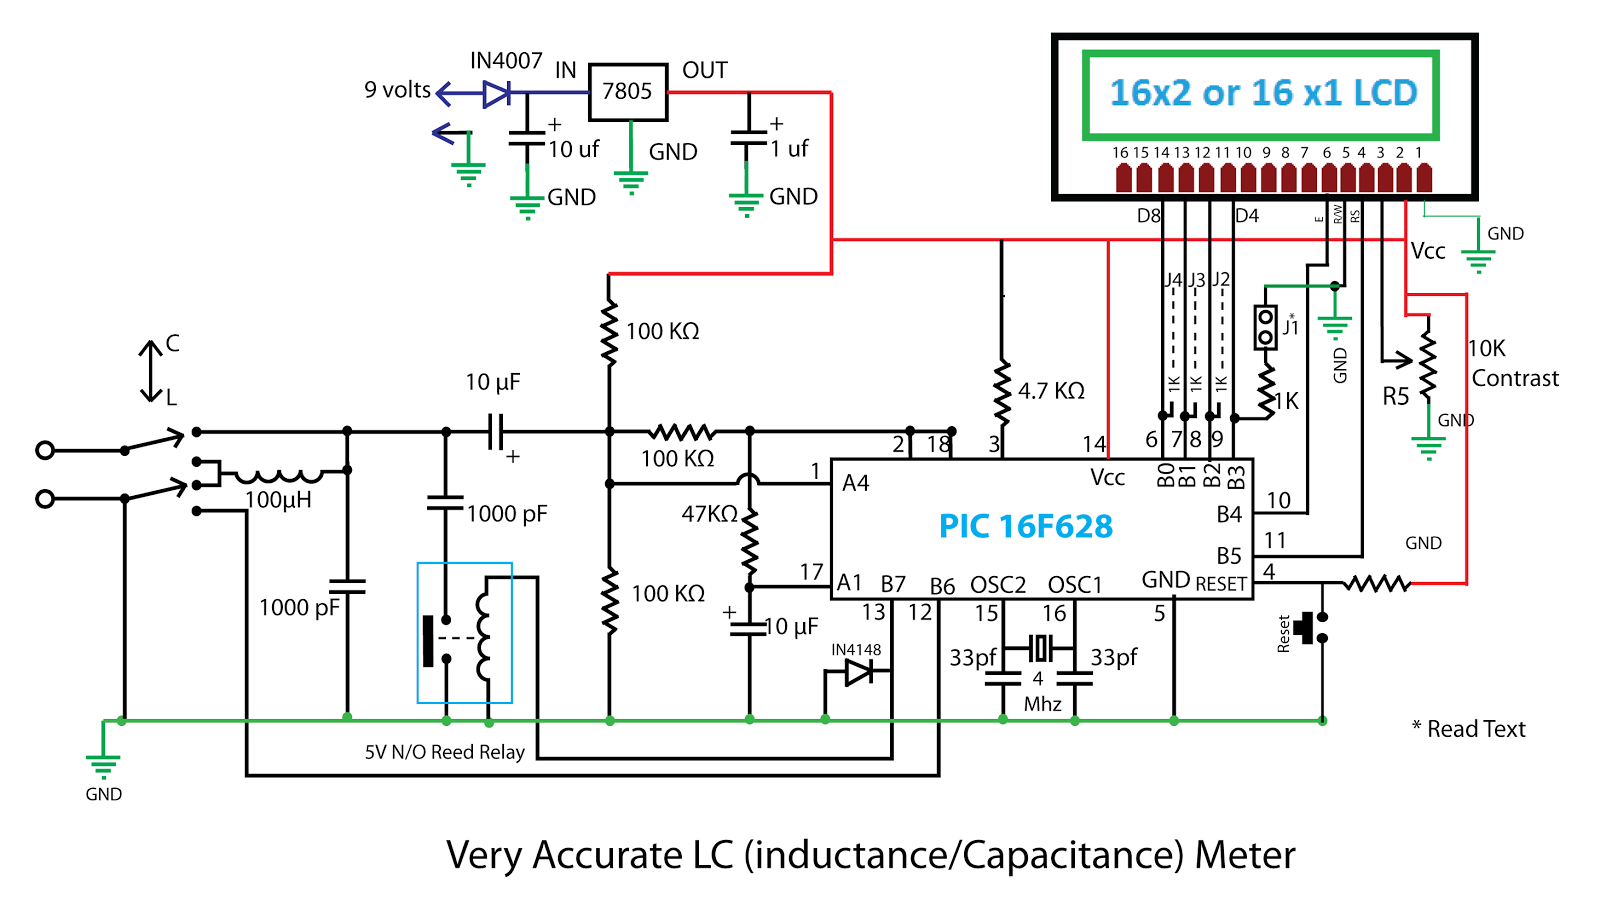 Capacitance And Inductance Meter Electronic Circuit Schematic - Fav